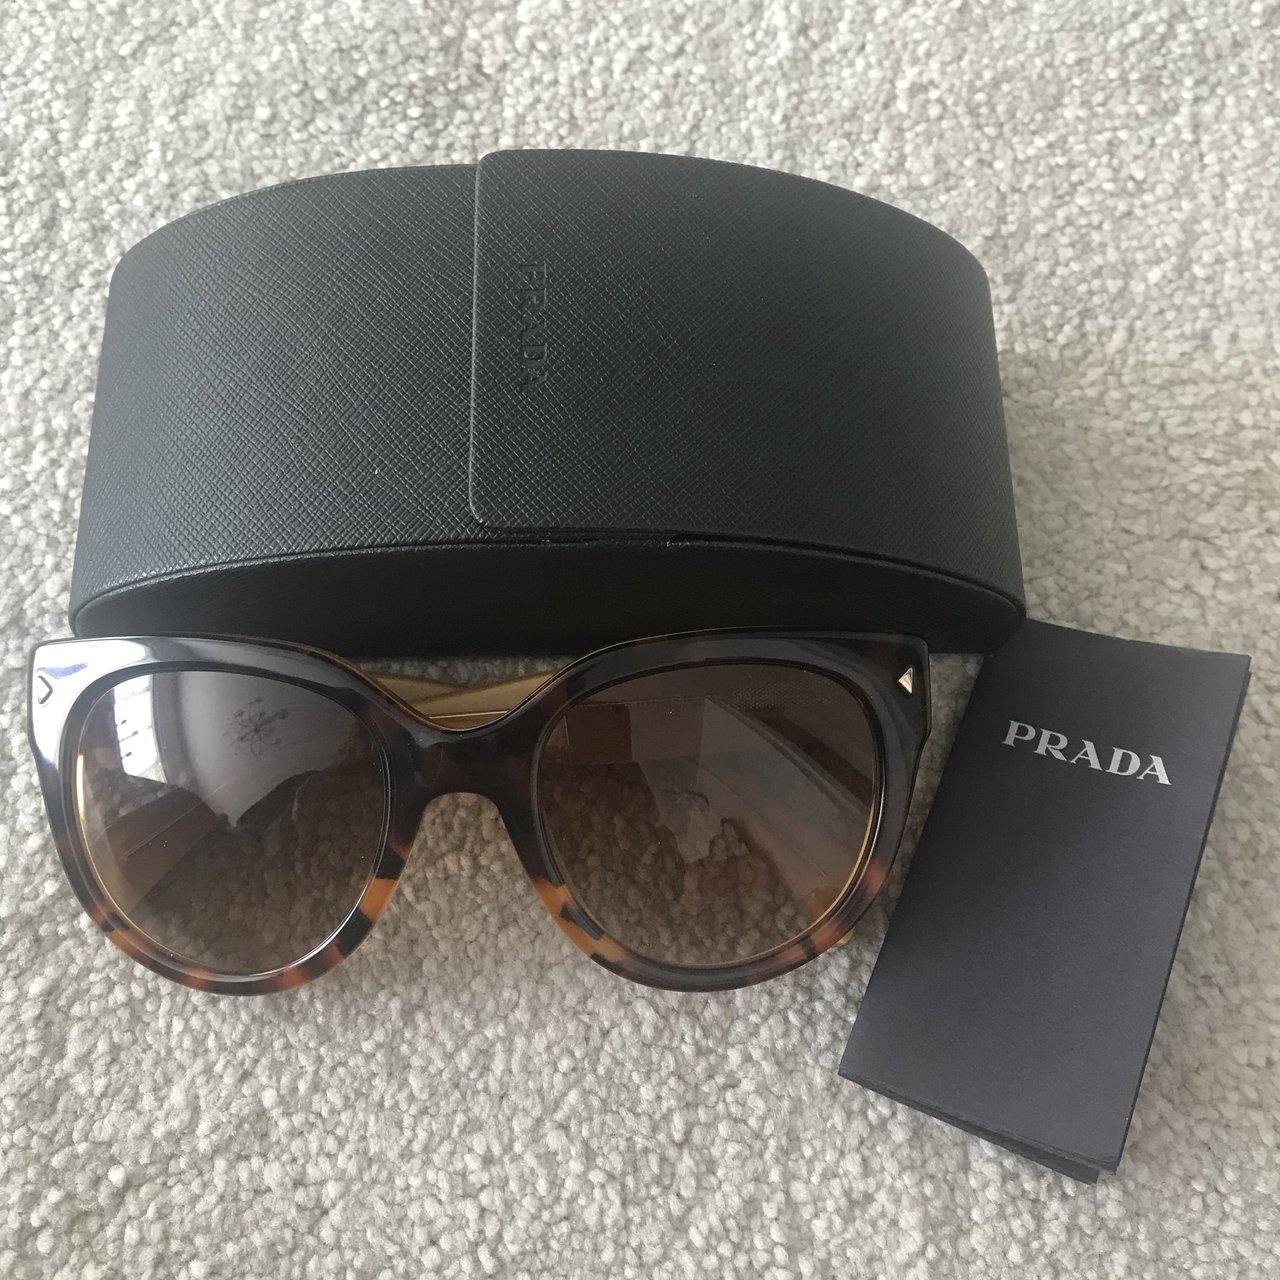 defed2f672910 Real My Never Depop Worn Perfect In Prada Condition Sunglasses vwqxvr1AnS